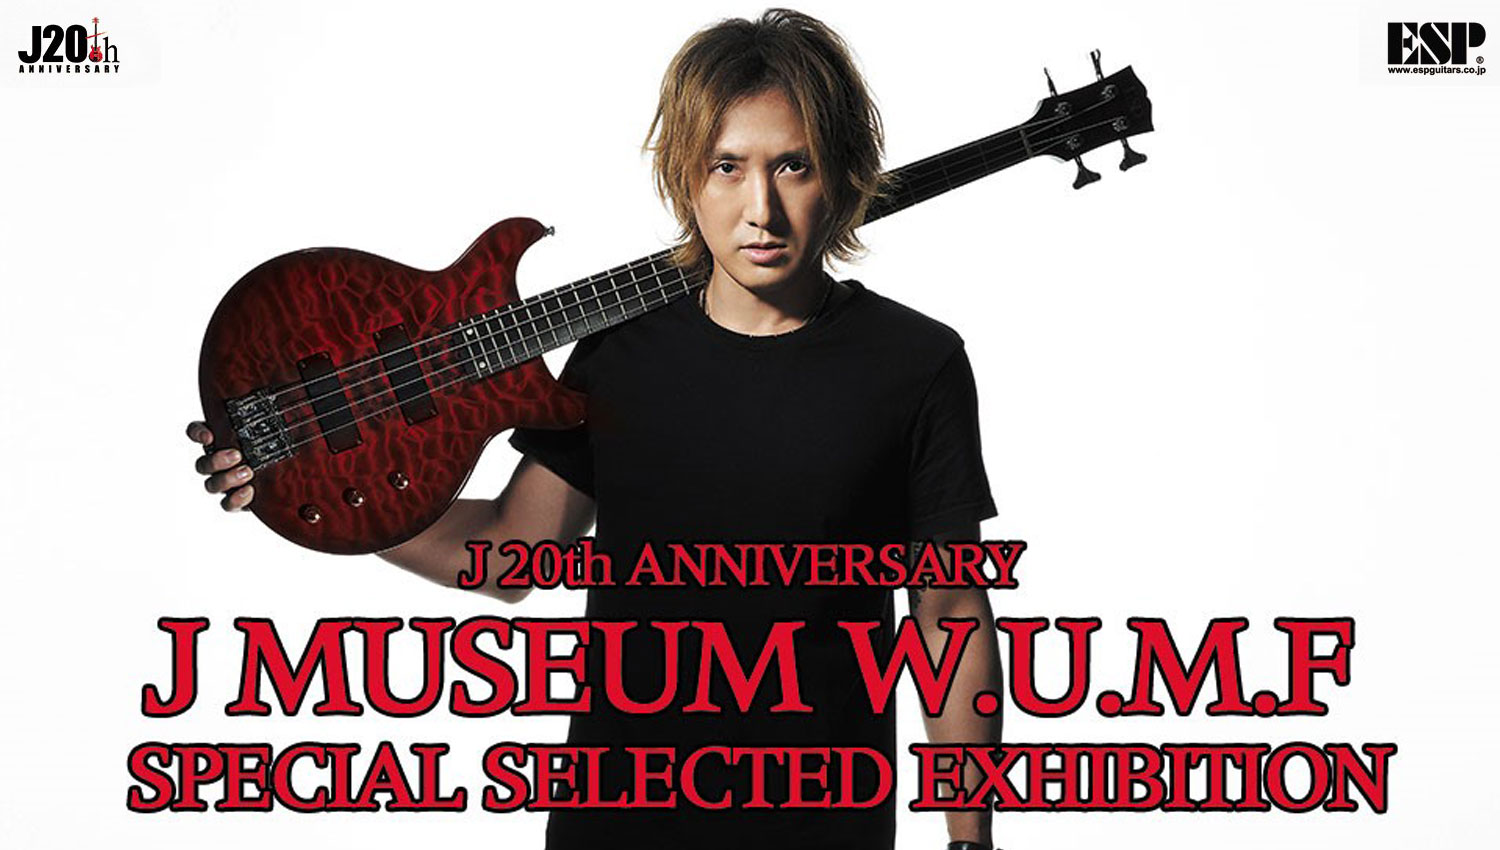 J MUSEUM W.U.M.F SPECIAL SELECTED EXHIBITION